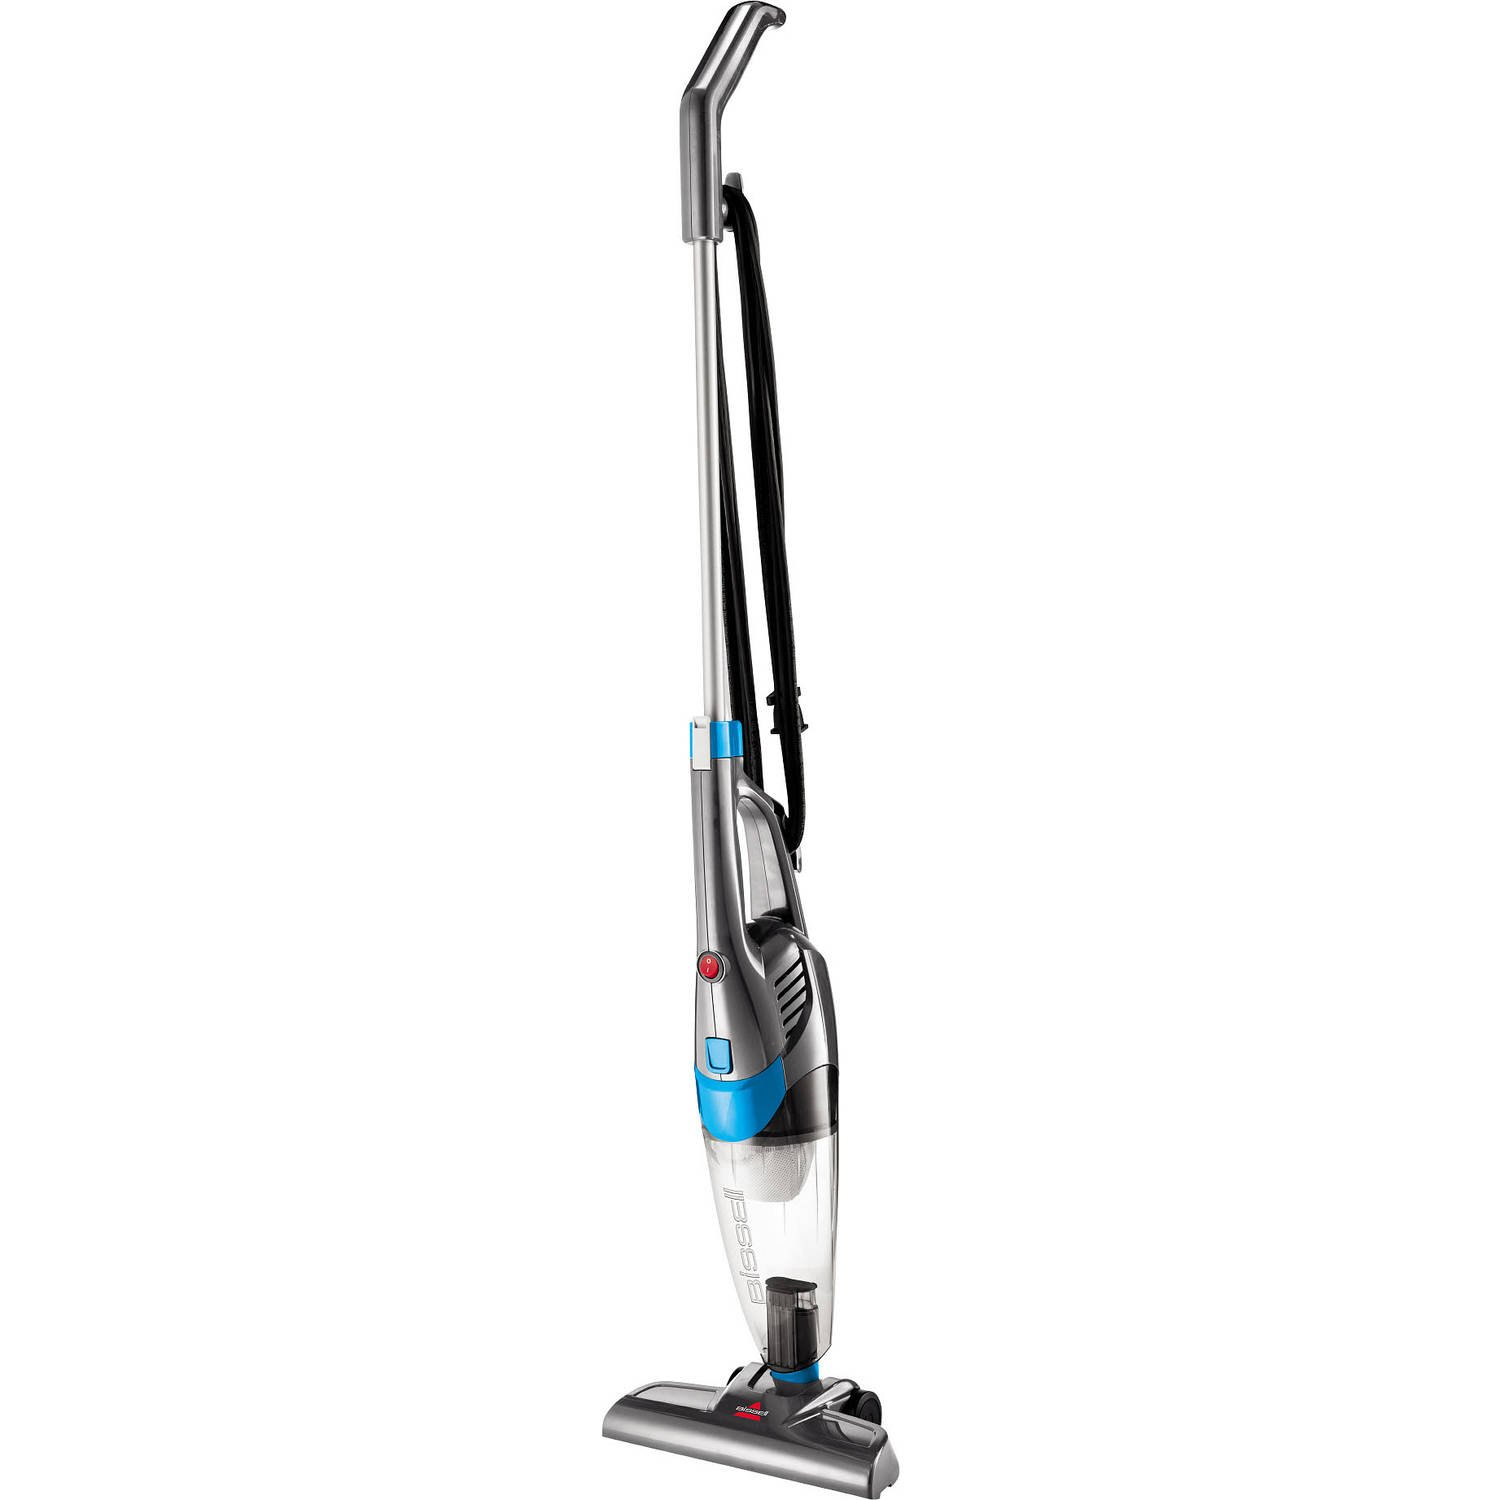 Bissell Lightweight 3-in-1 Vacuum (Grey and Blue)